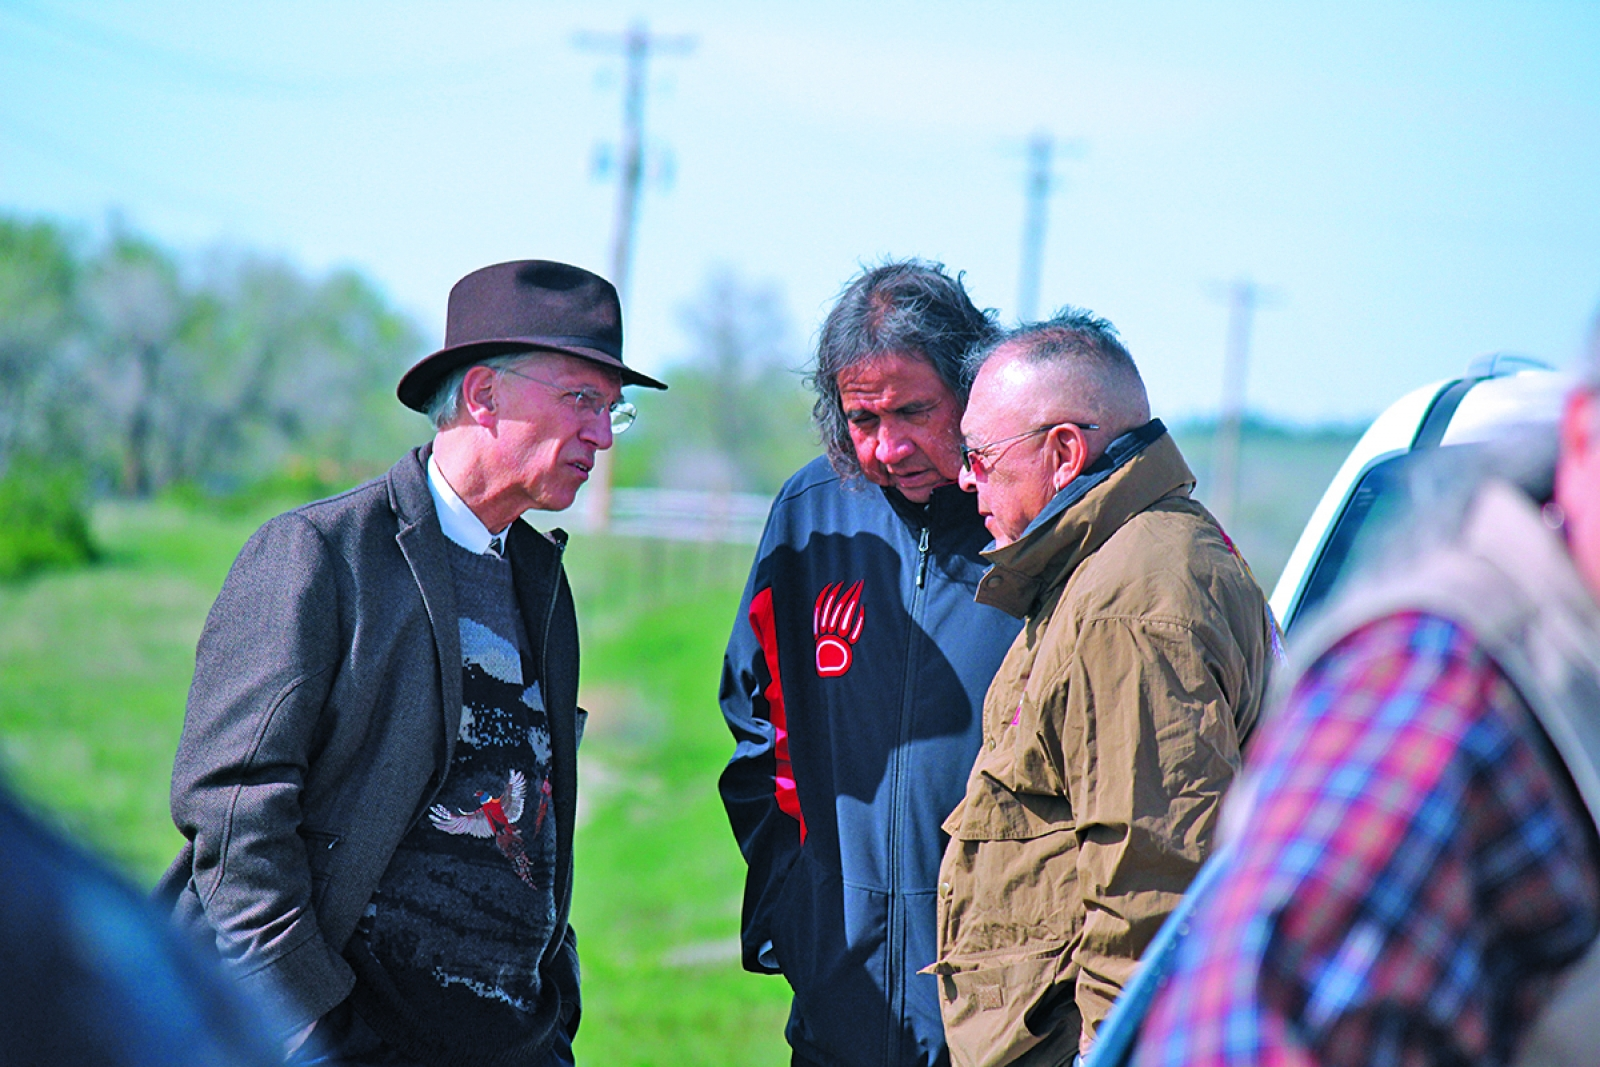 Photo by Lauren Brant – Attorney David Domina speaks with activists Frank LaMere and Sonny Skyhawk before the rally on Sunday.